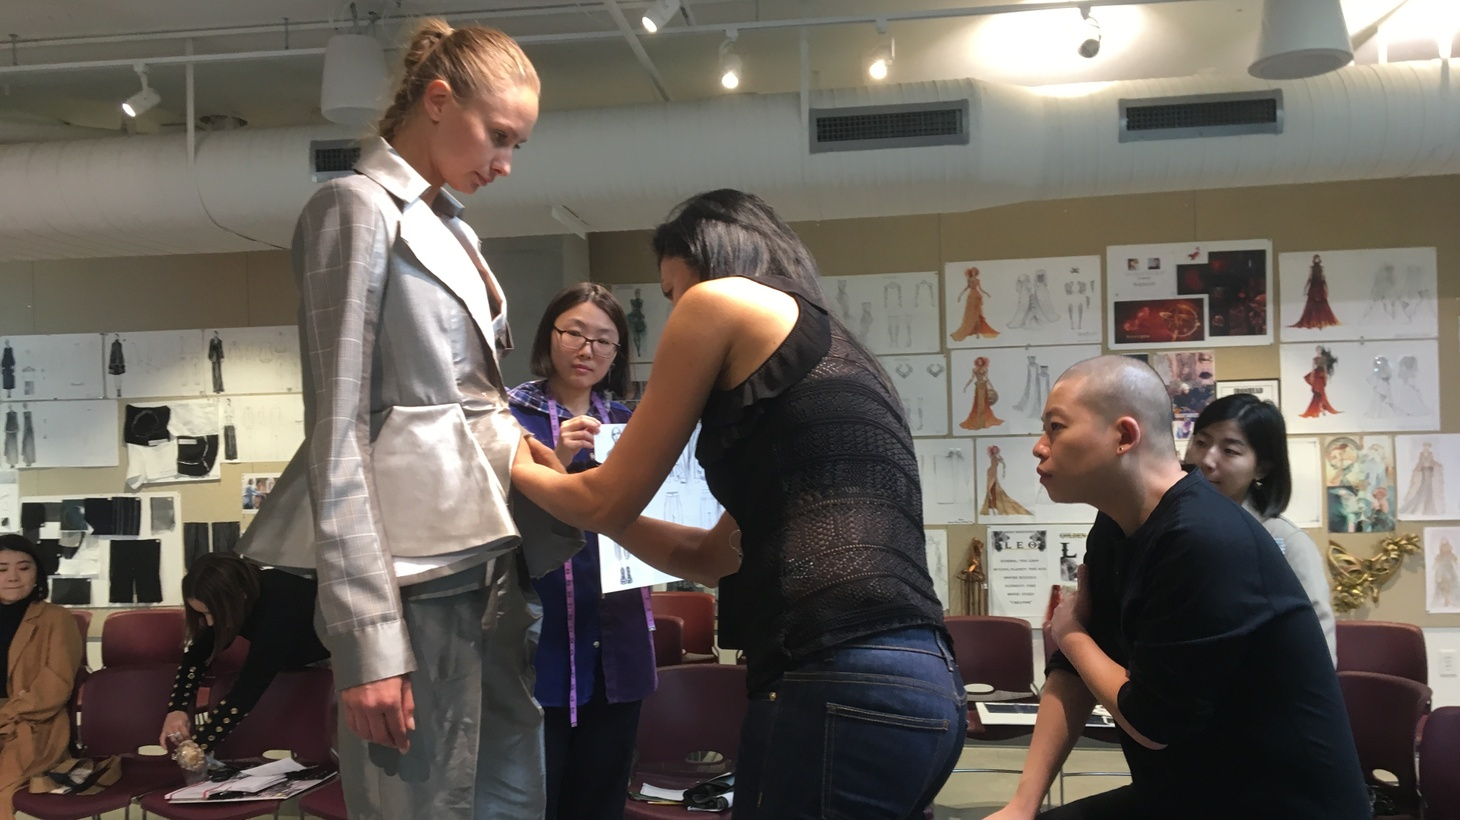 Jason Wu mentors Otis fashion students as they prepare a collection of women's outfits inspired by uniforms of the 1950s.